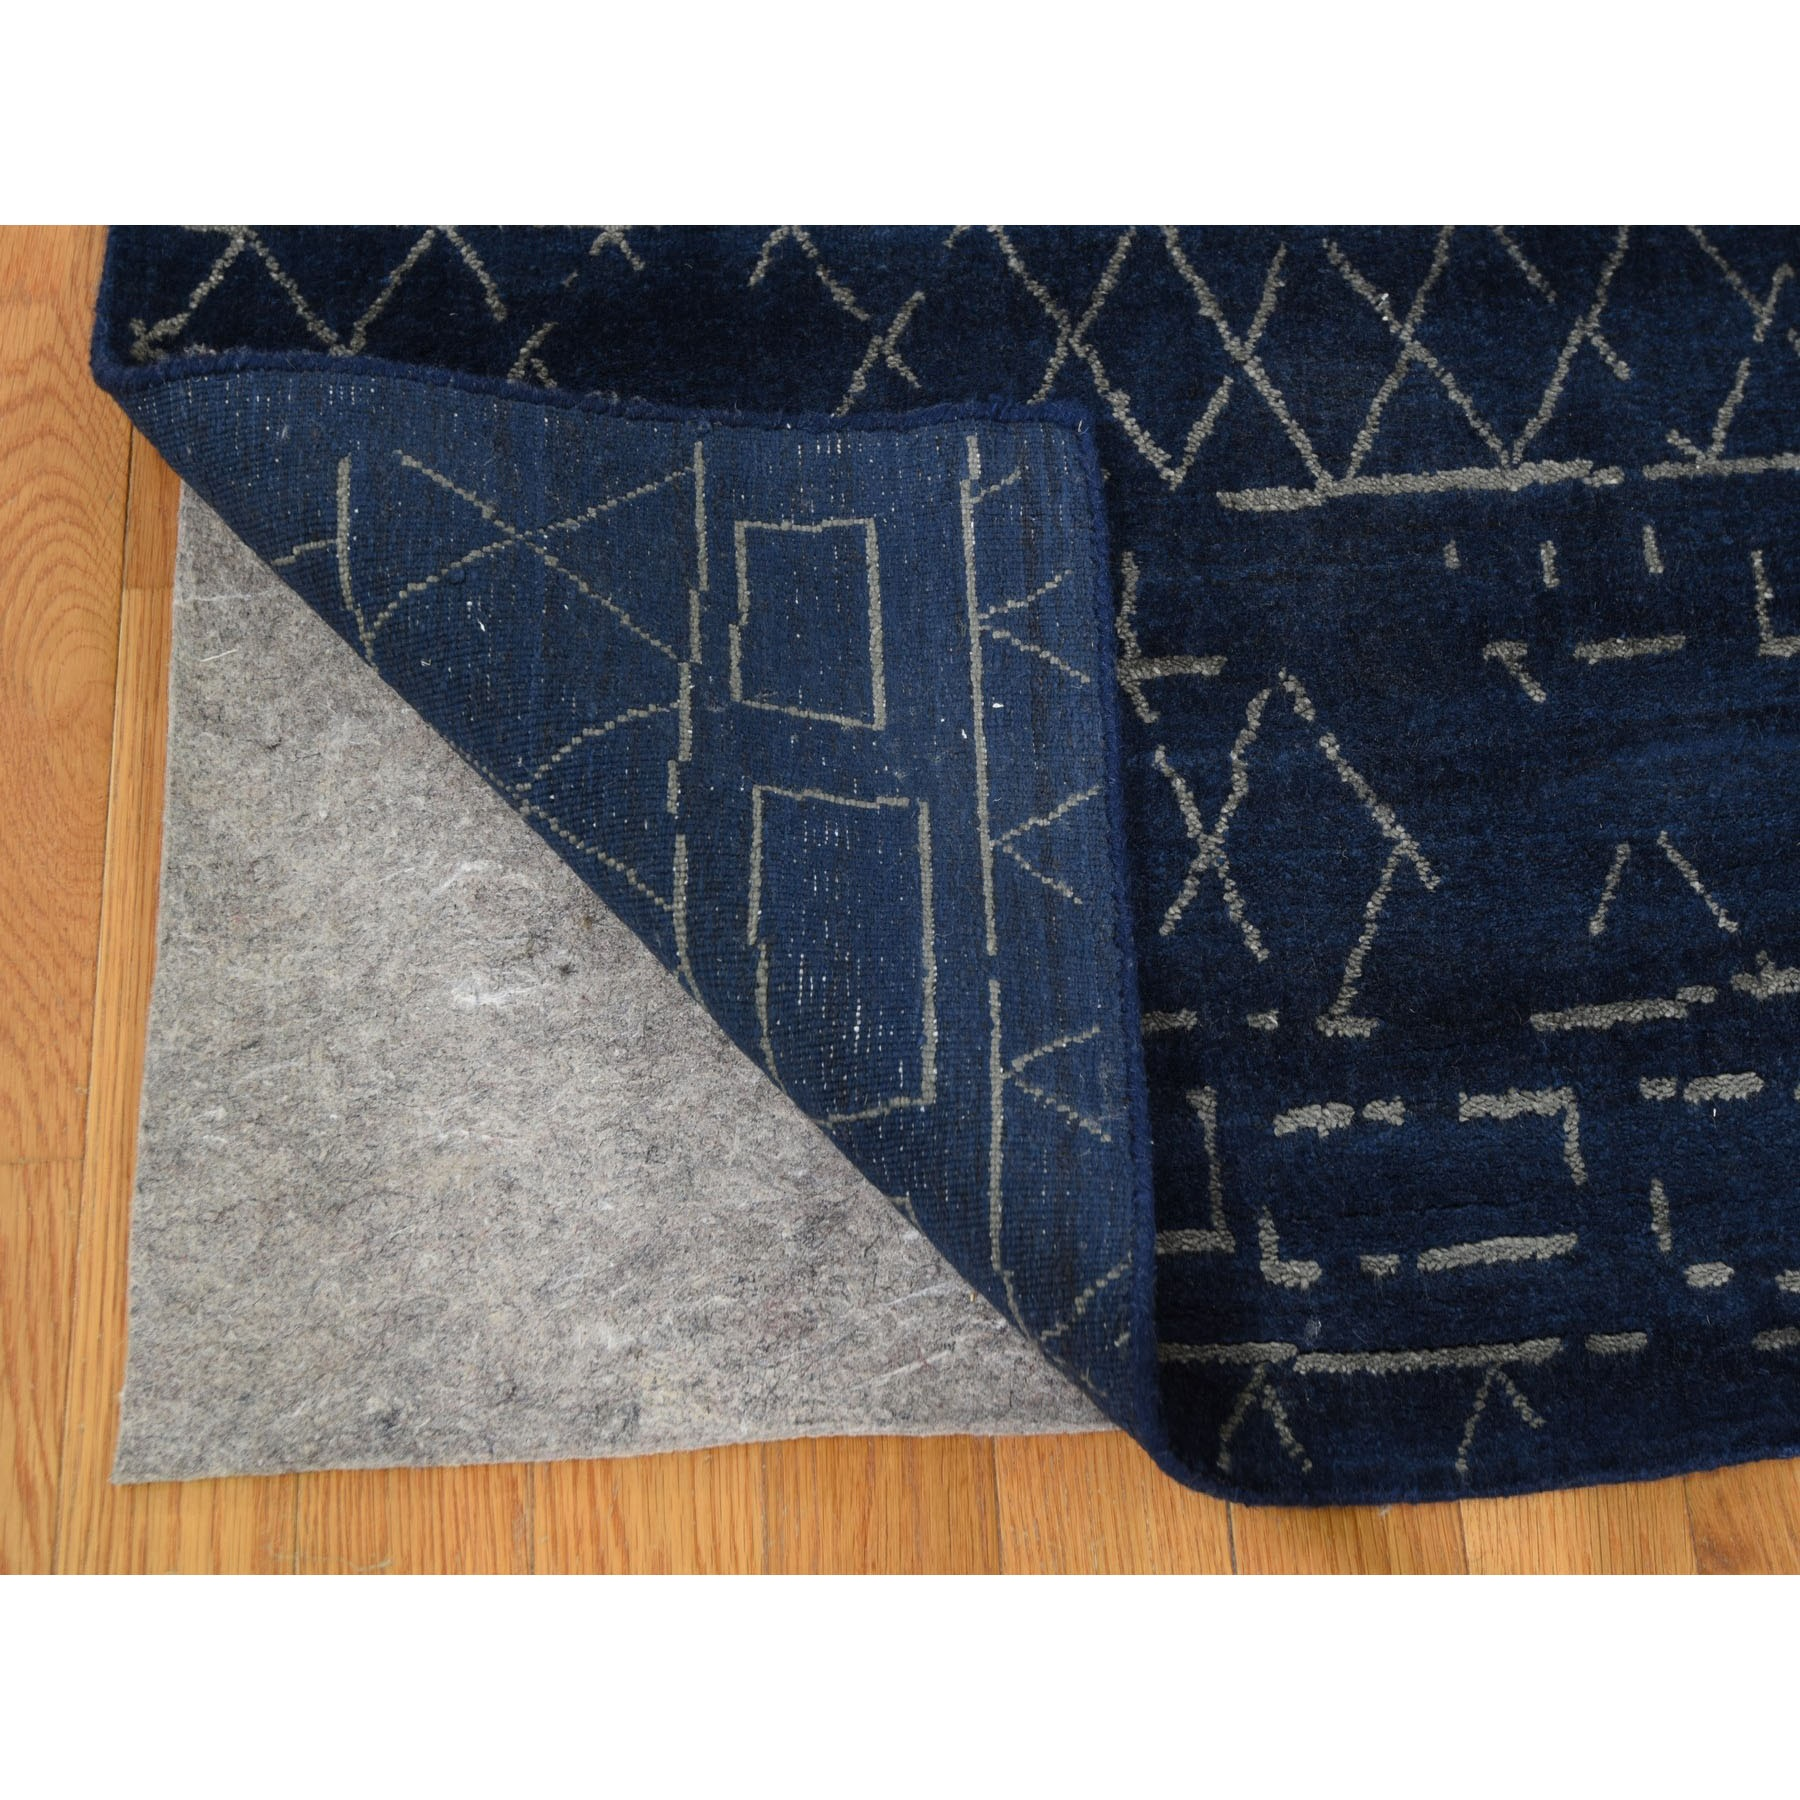 "8'x9'10"" Navy Blue Wool And Silk Modern Hand Loomed Oriental Rug"